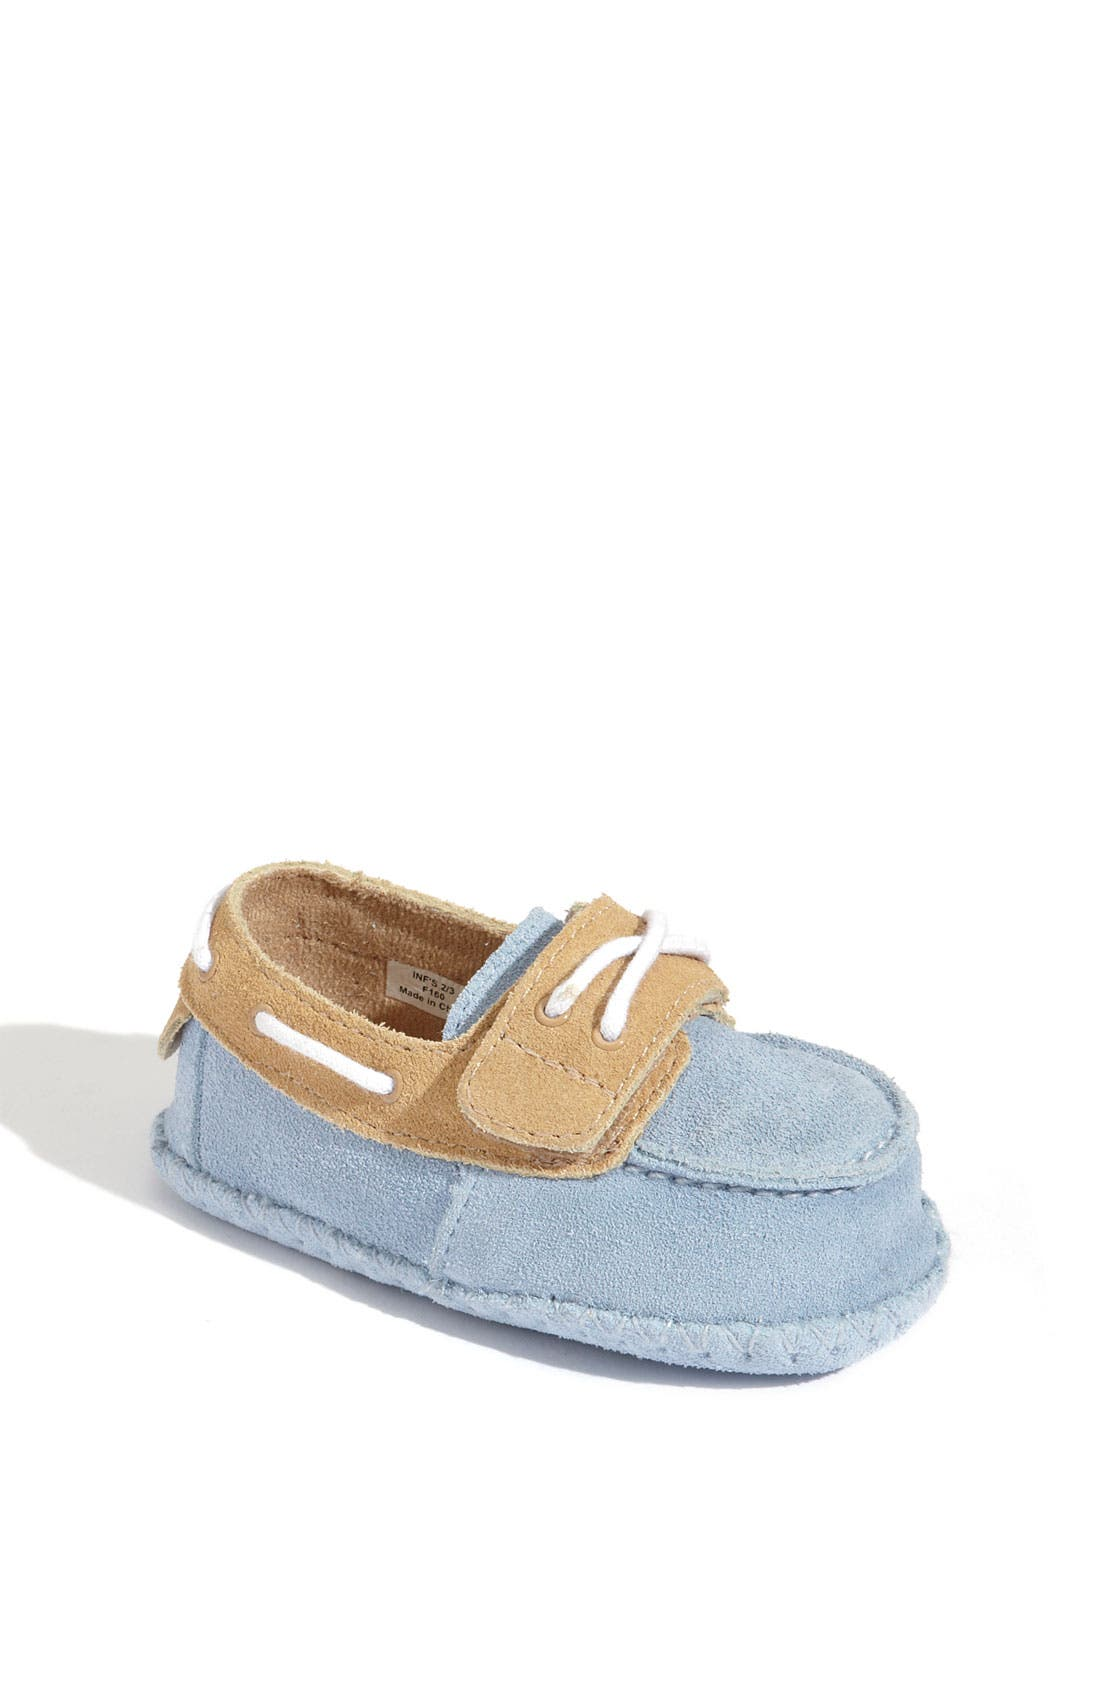 Alternate Image 1 Selected - UGG® Australia 'Zach' Slip-On (Baby & Walker)